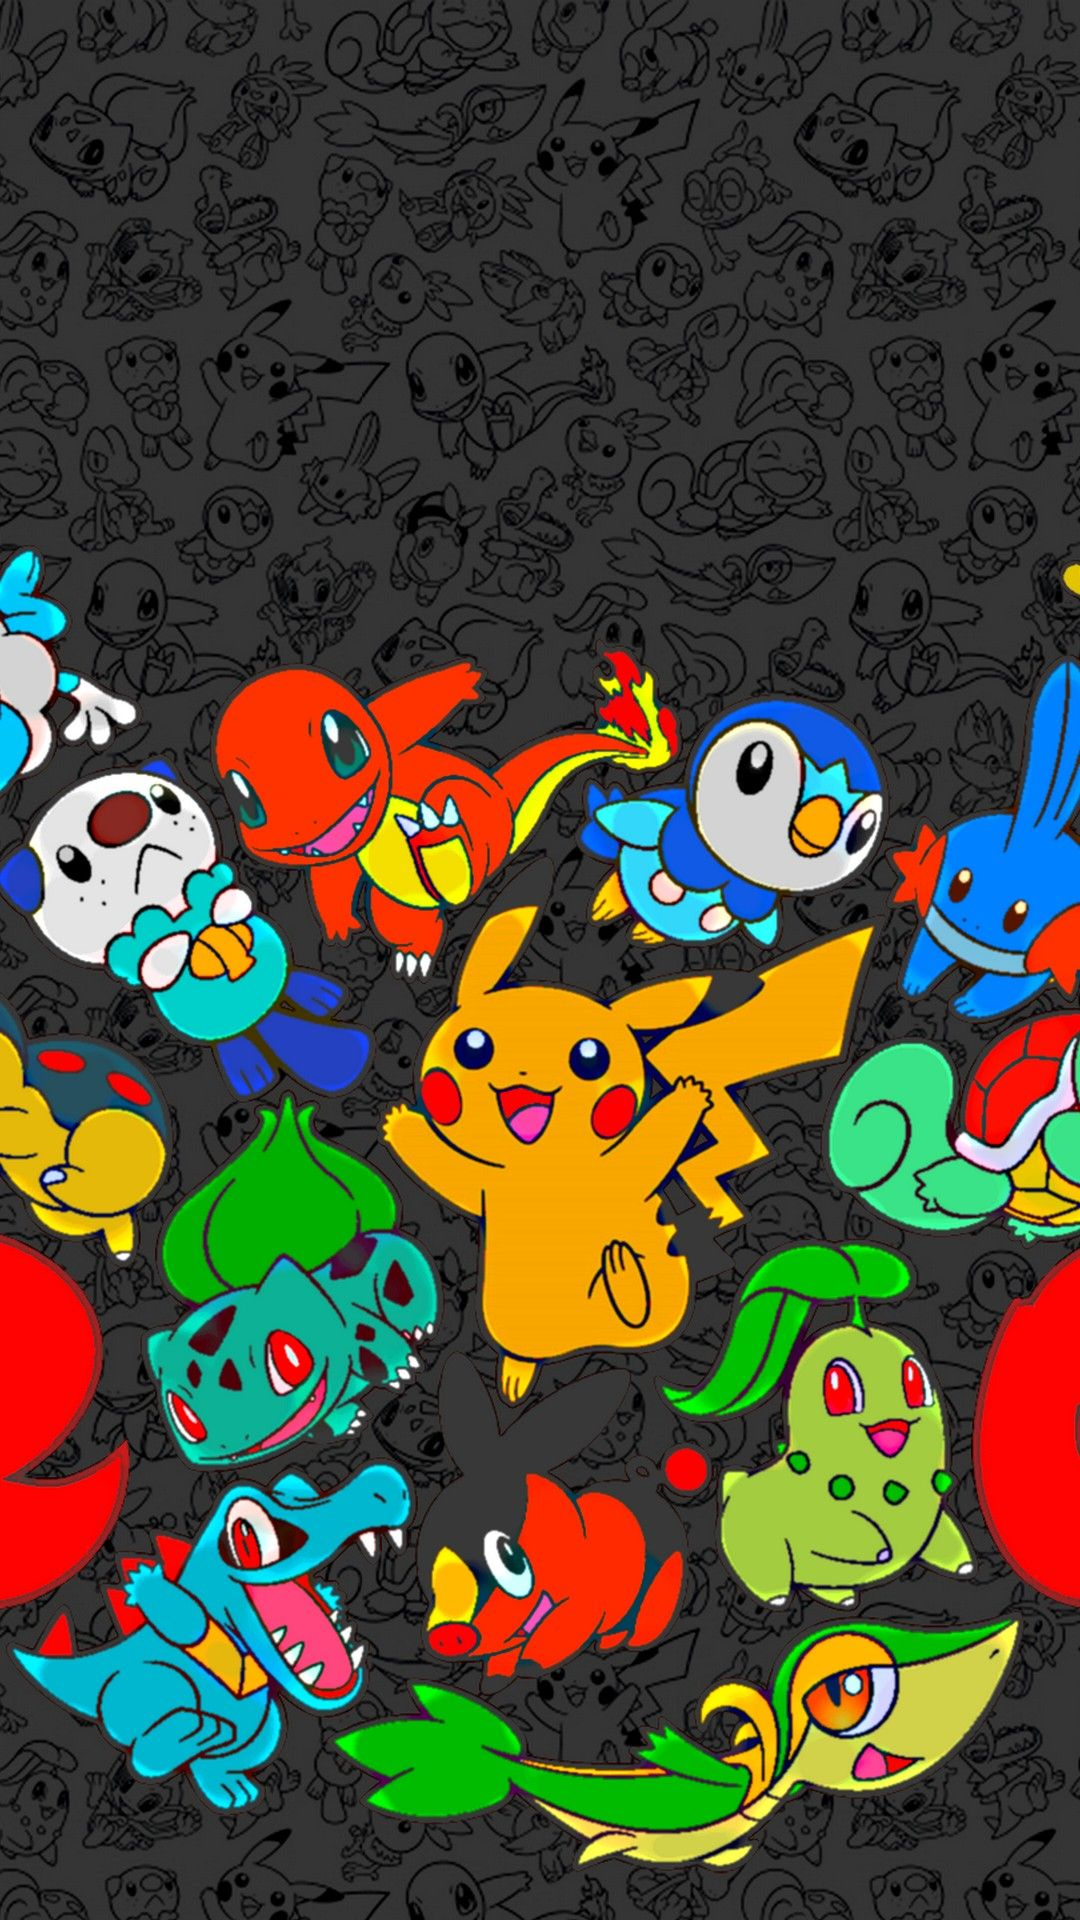 Pokemon Wallpaper Android In 2020 Iphone Wallpaper Pokemon Android Wallpaper Cool Pokemon Wallpapers